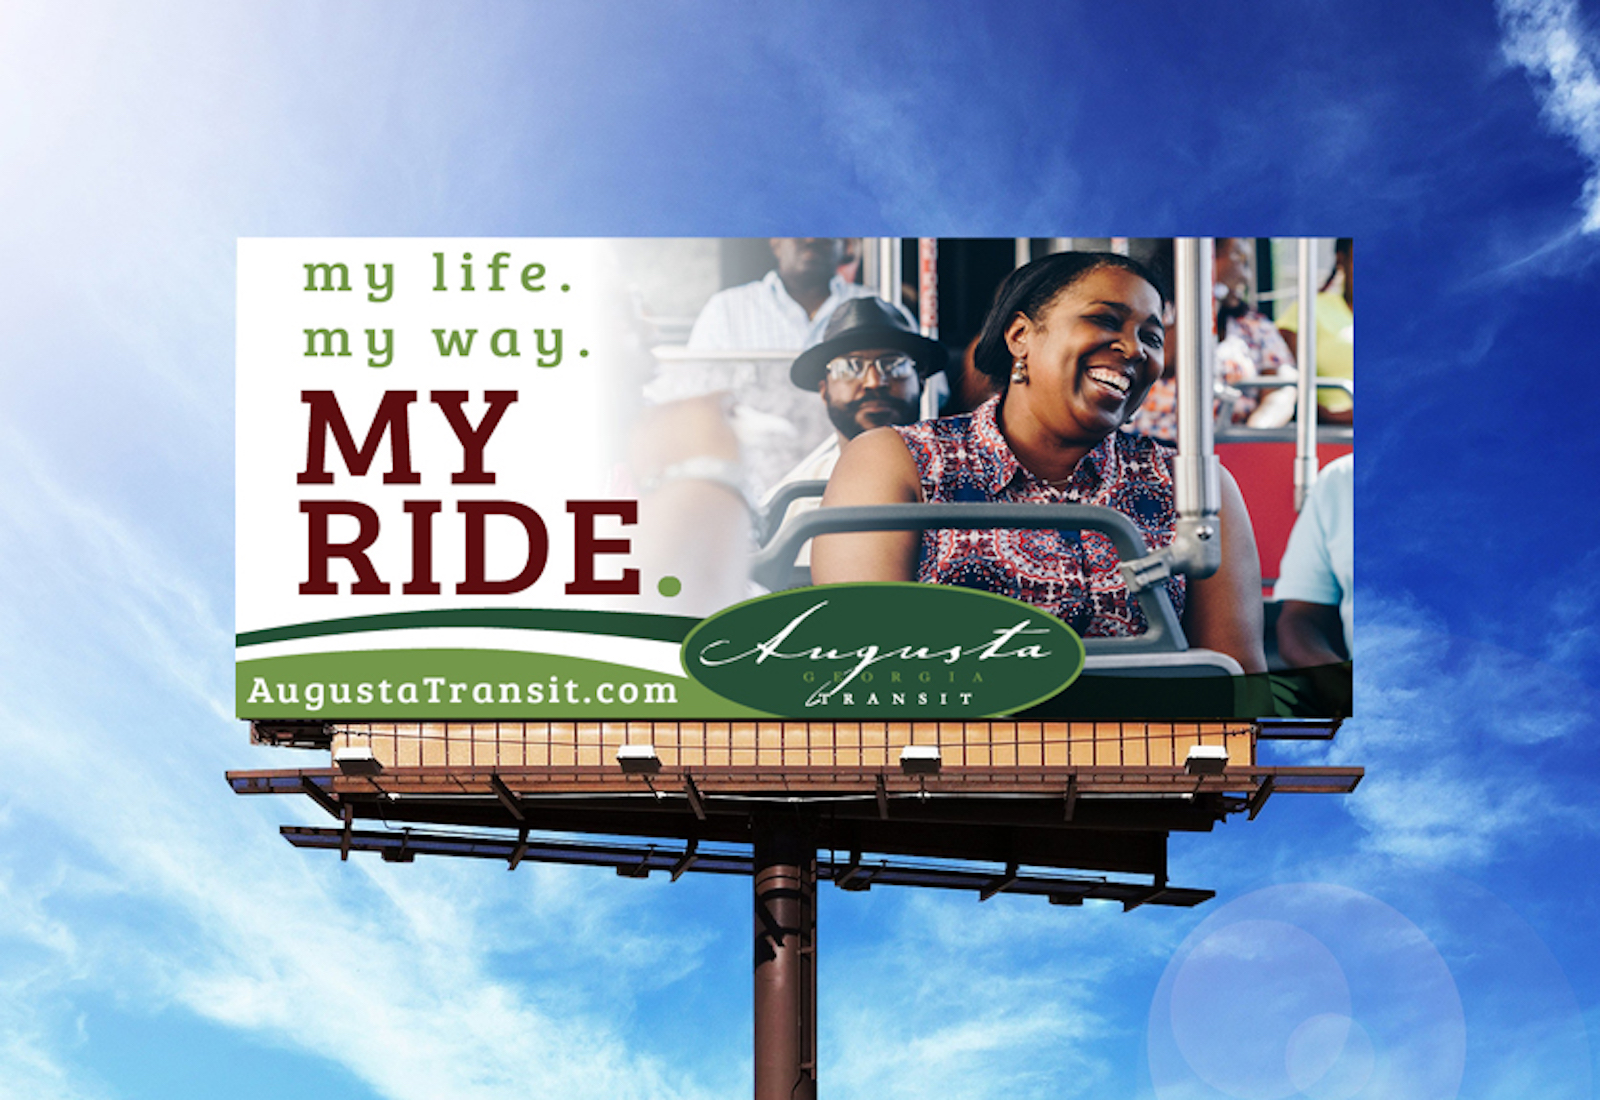 marketing strategy - augusta transit billboards